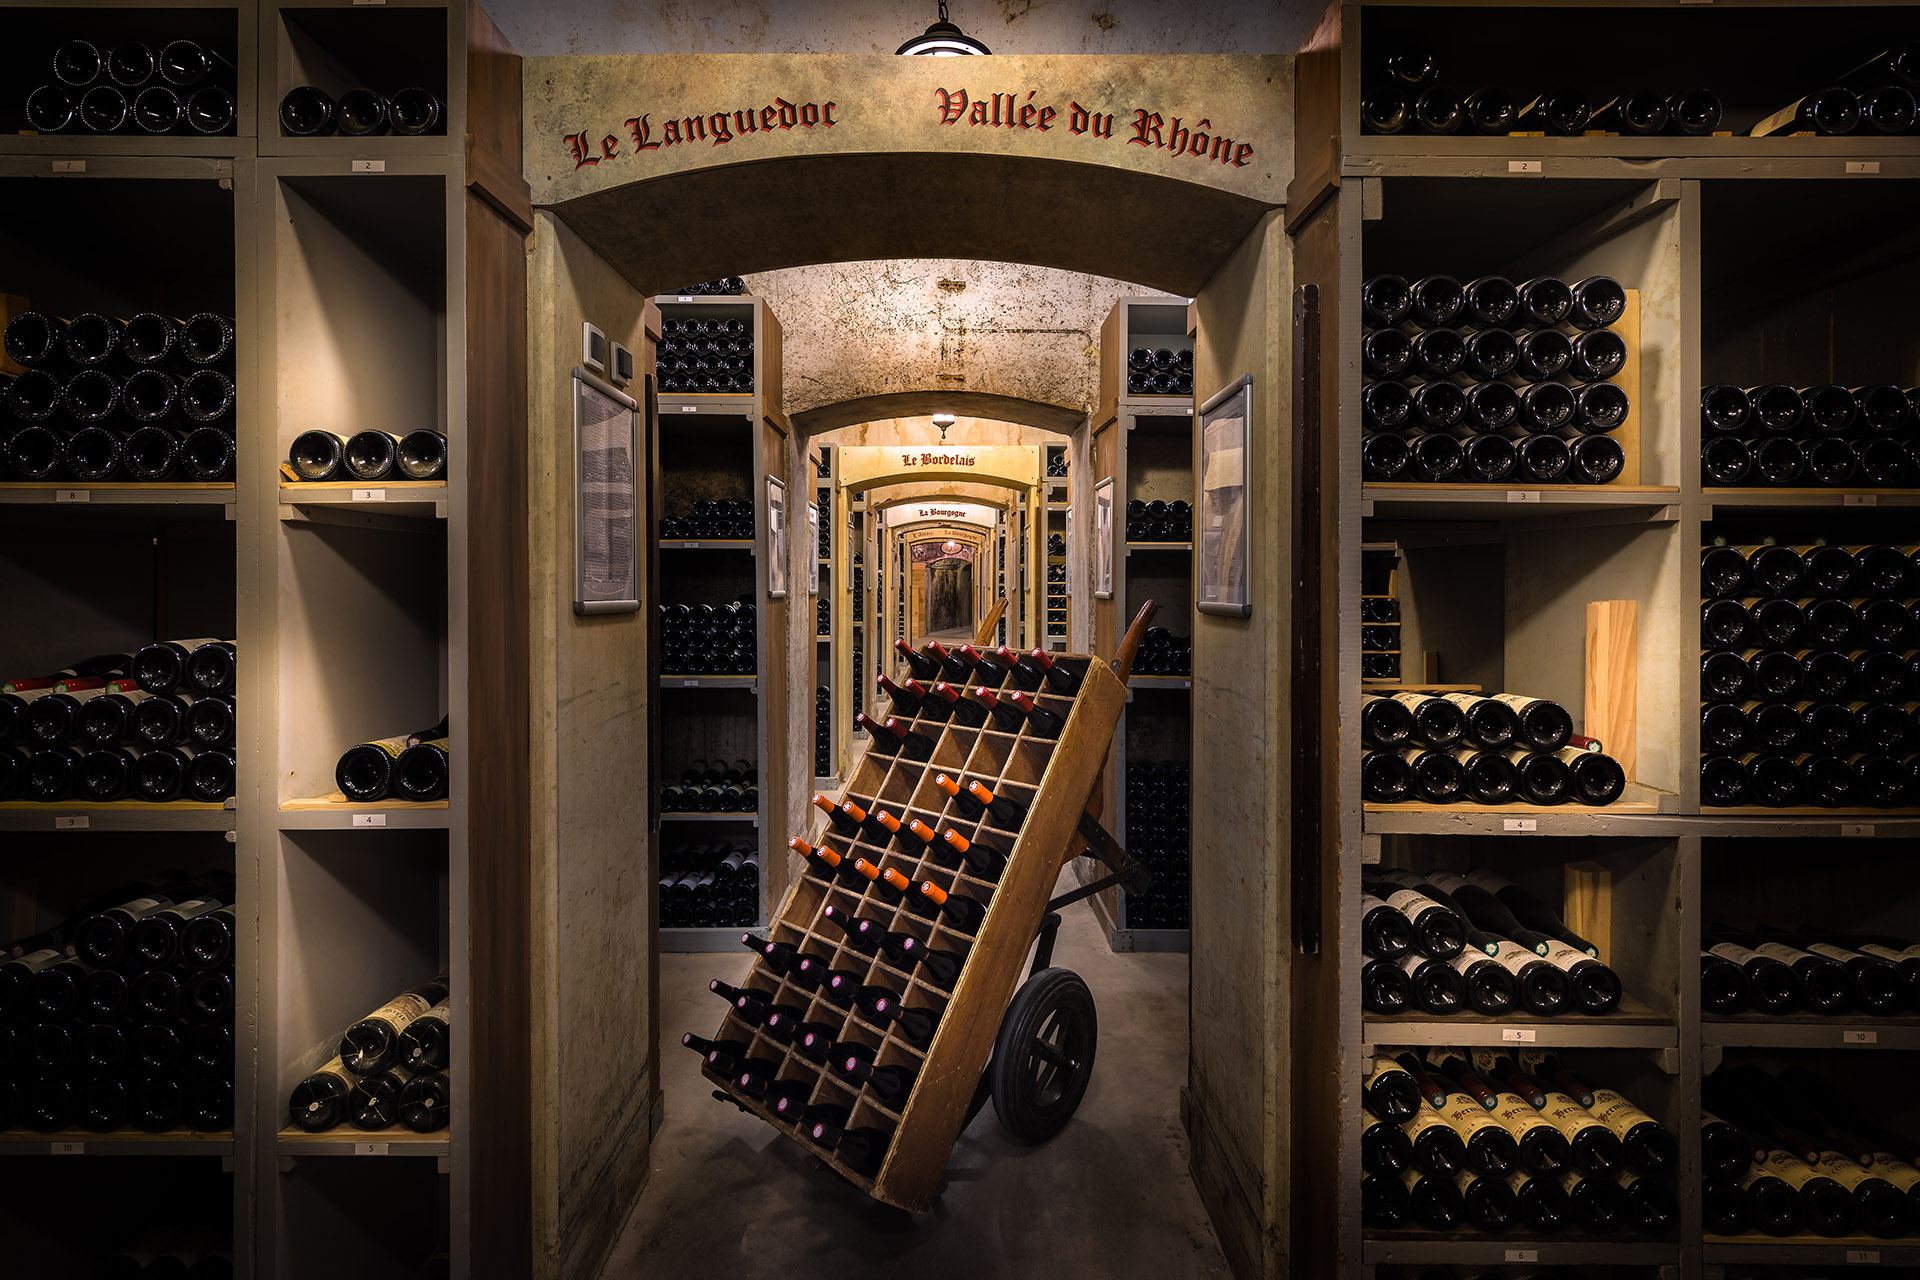 10 Of The World S Largest Wine Collections From An Underground City To A Legendary Steakhouse Wine Enthusiast